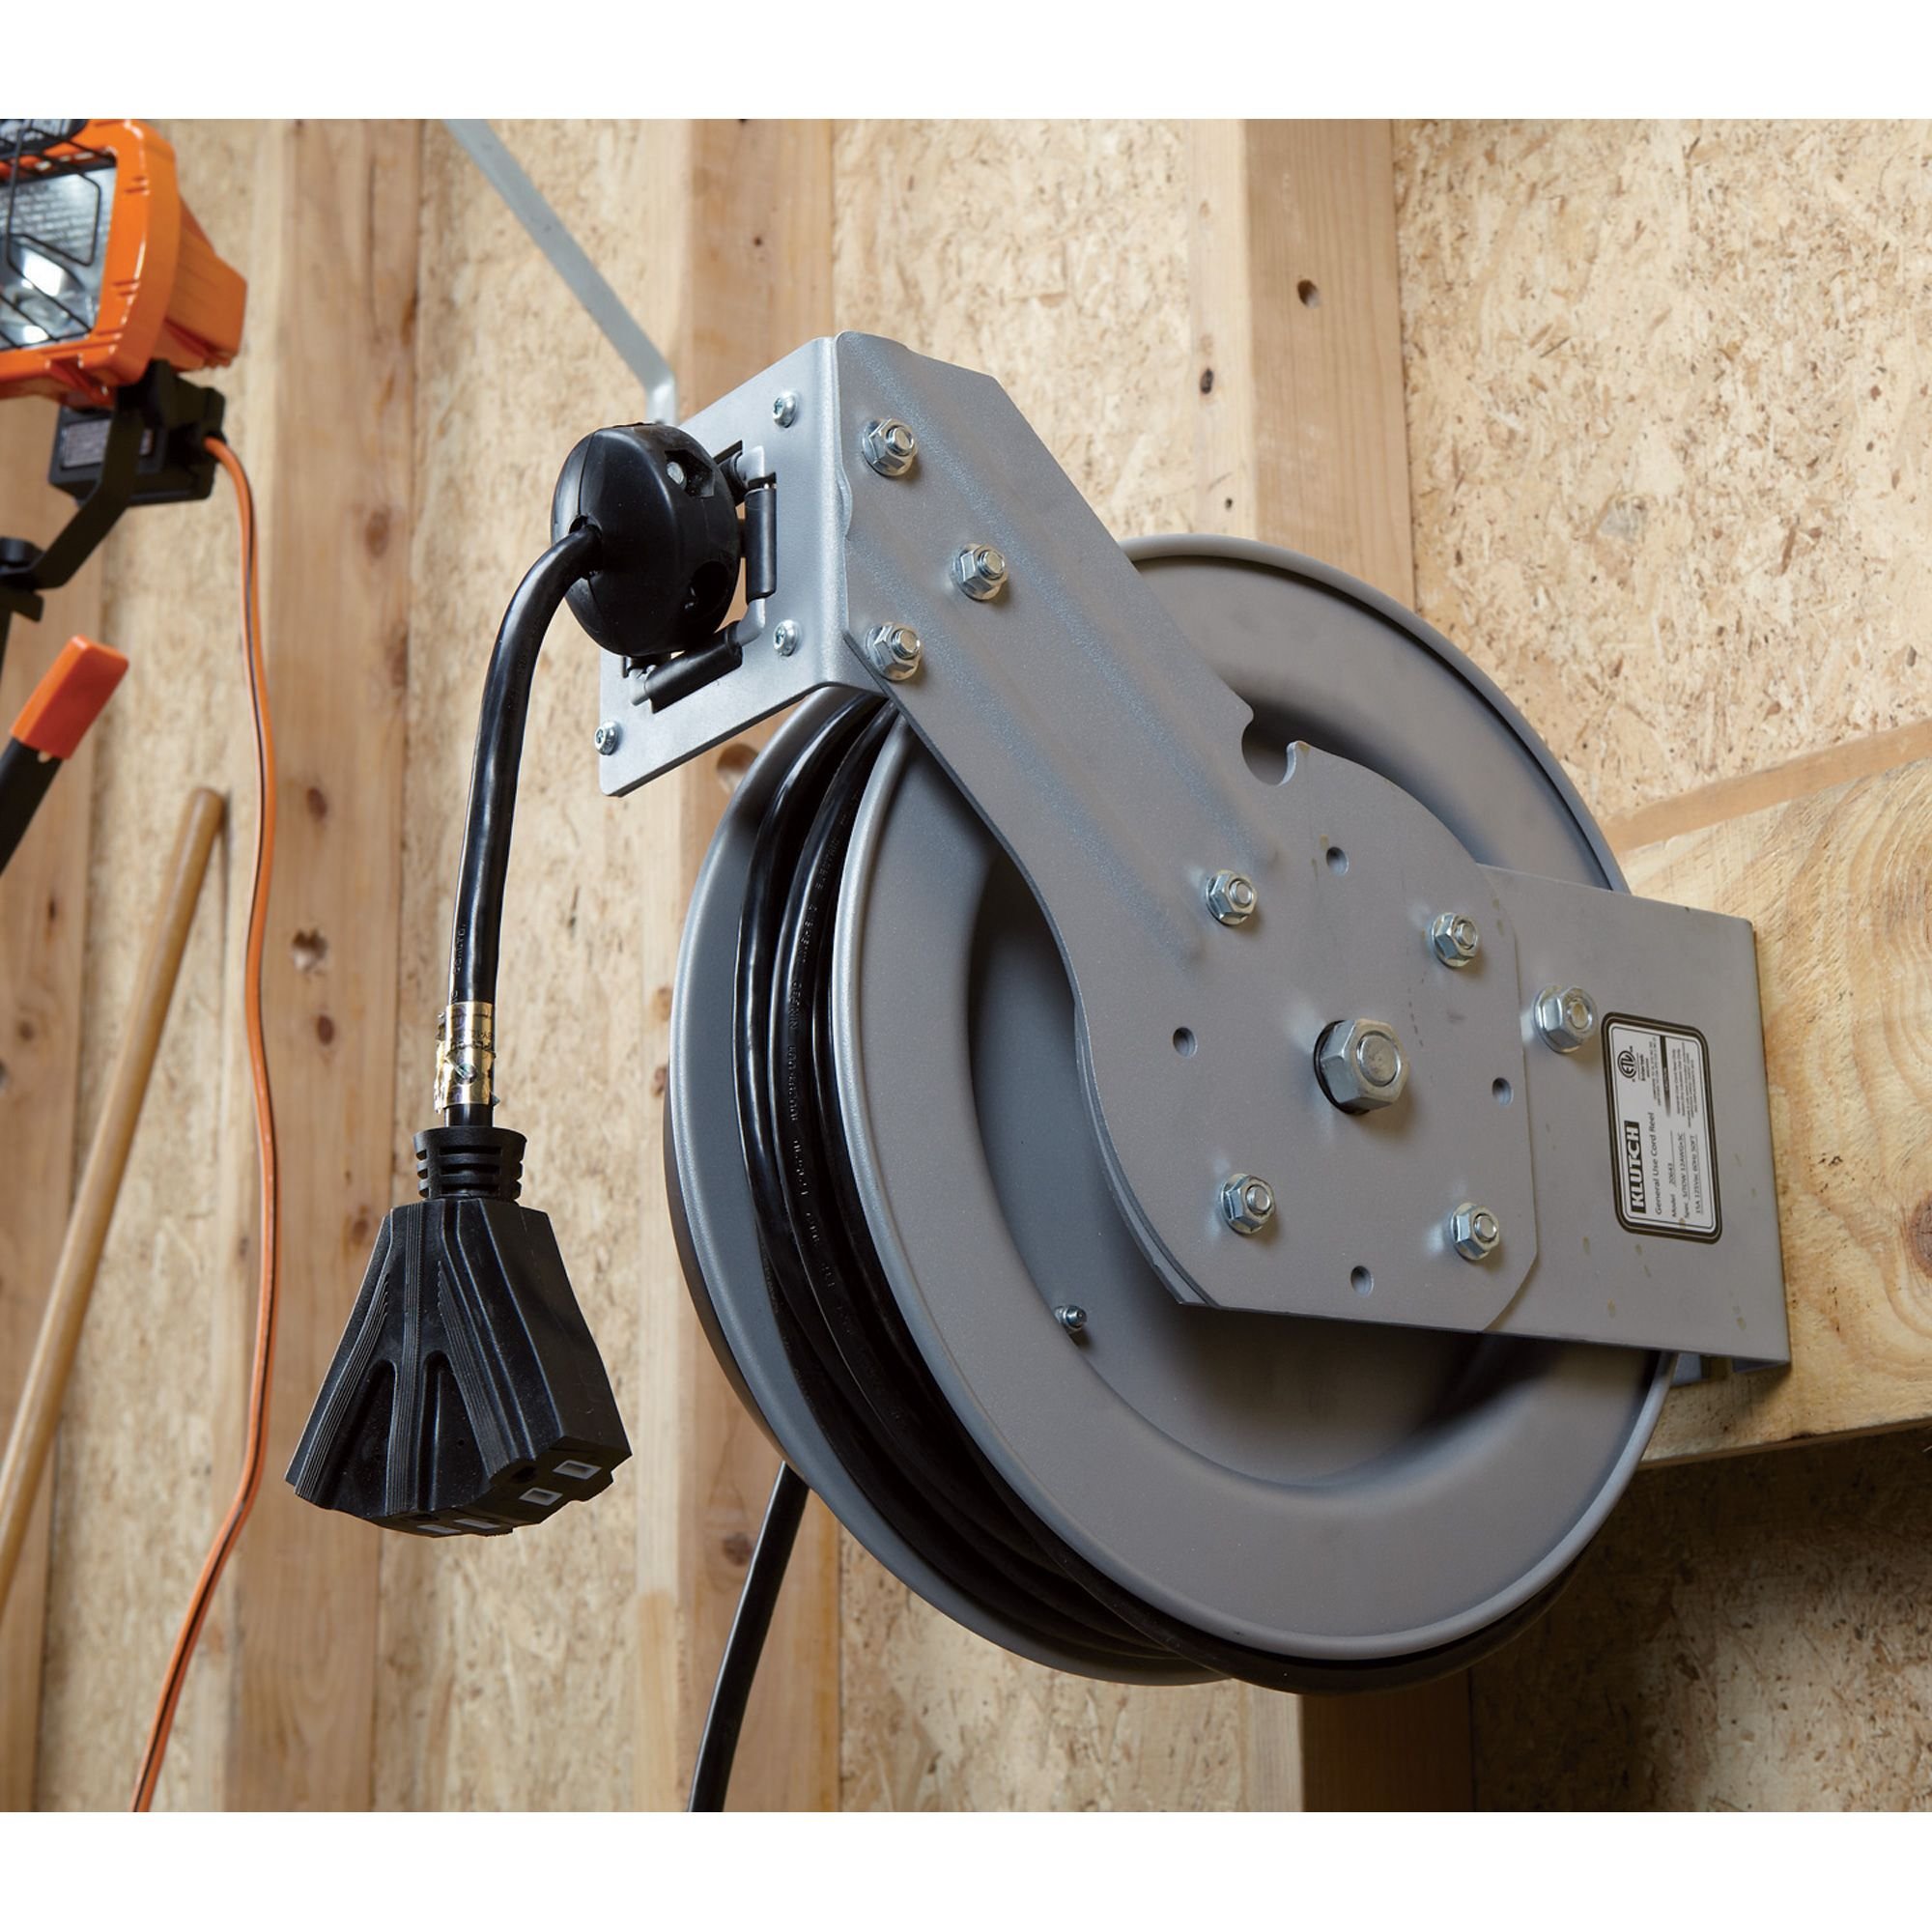 This Heavy Duty Retractable Cord Reel Comes With 50 Feet